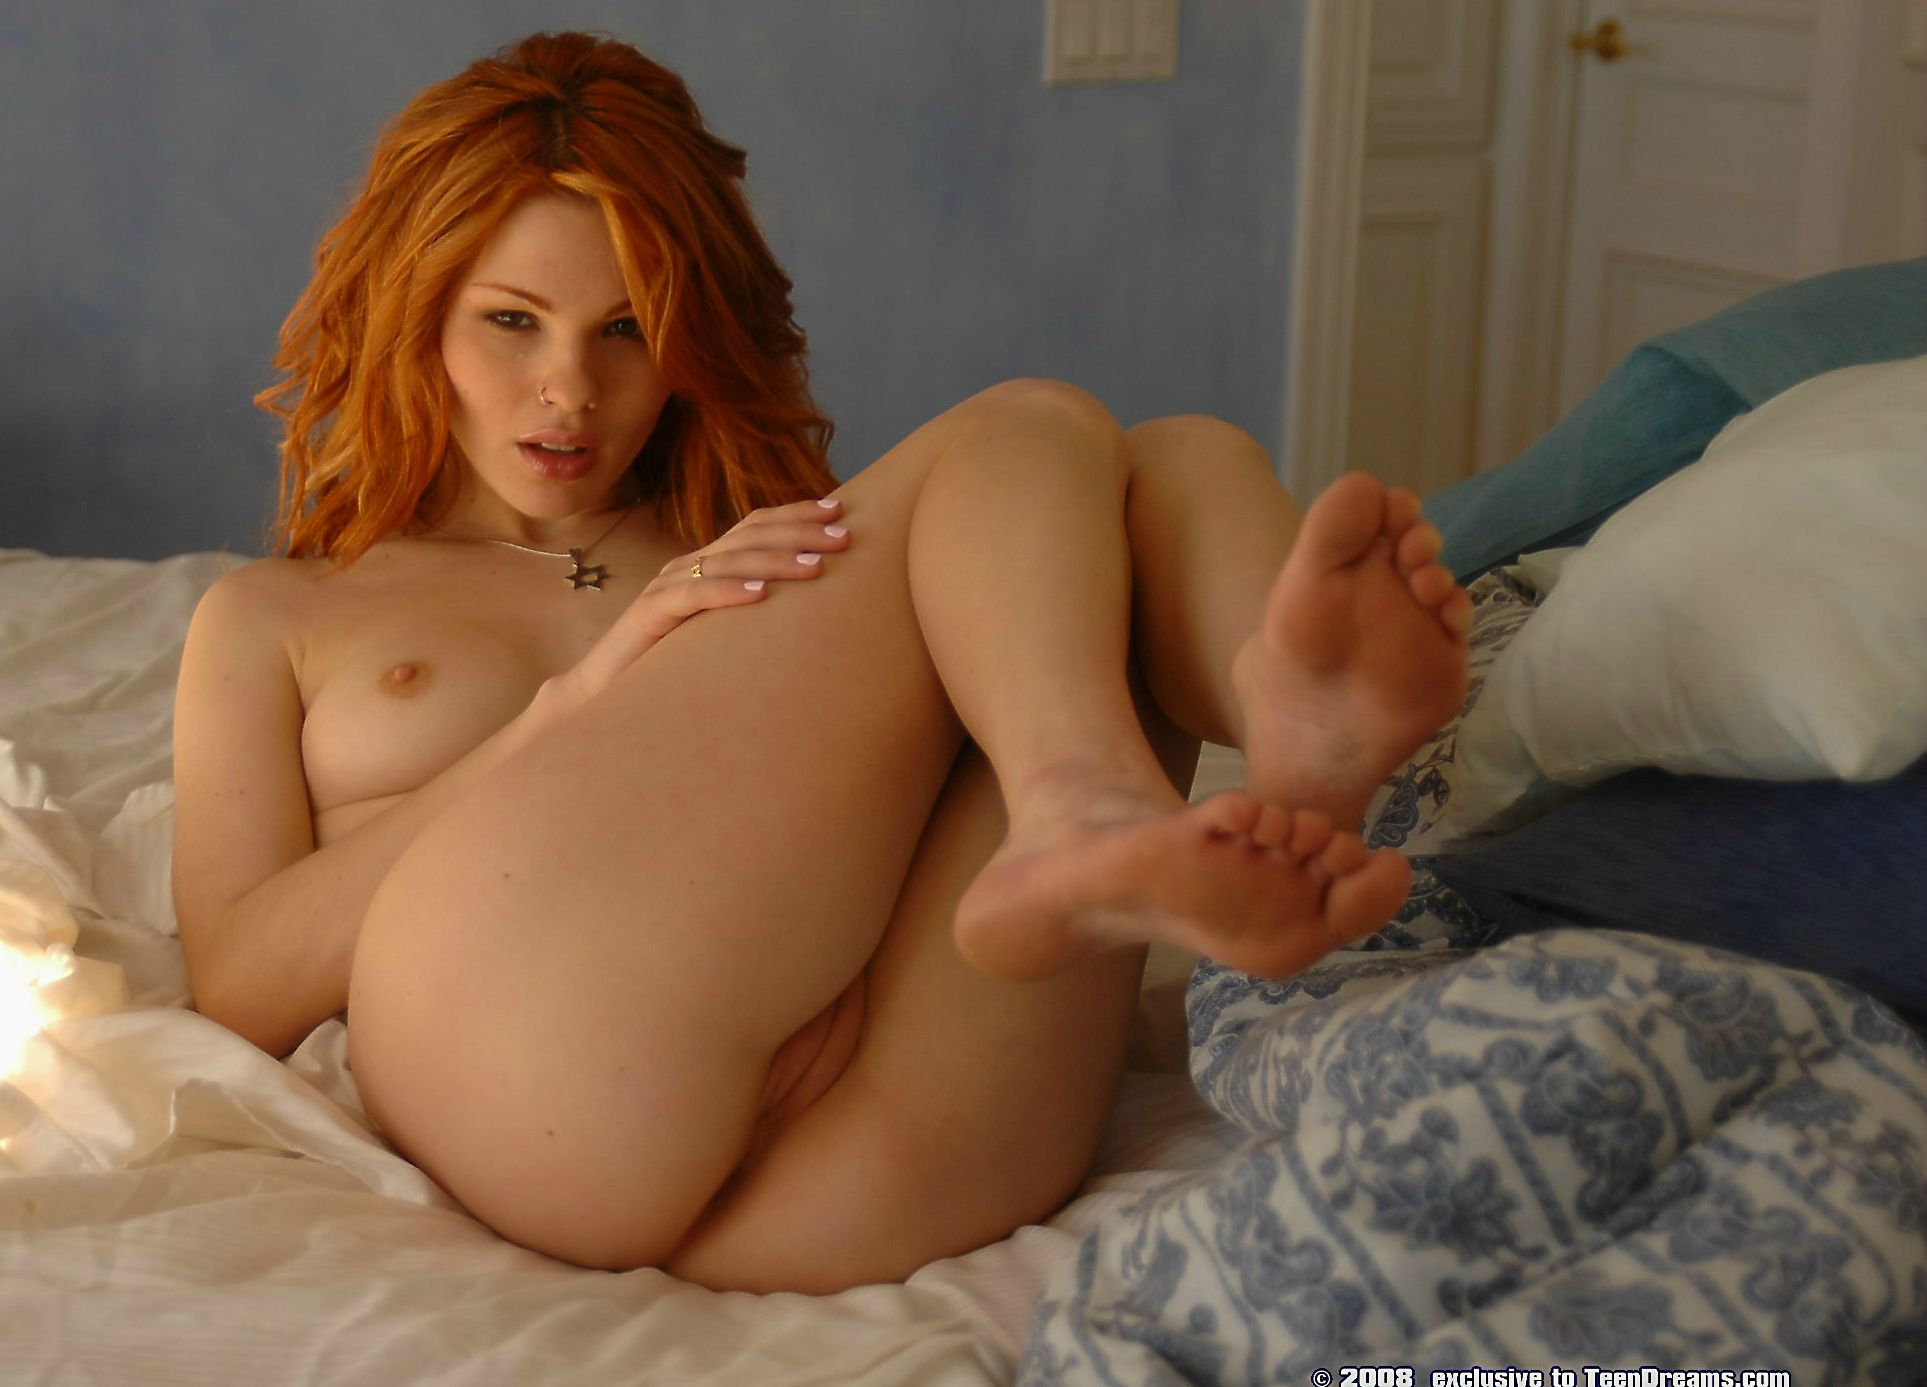 Long red hair milf nude ass